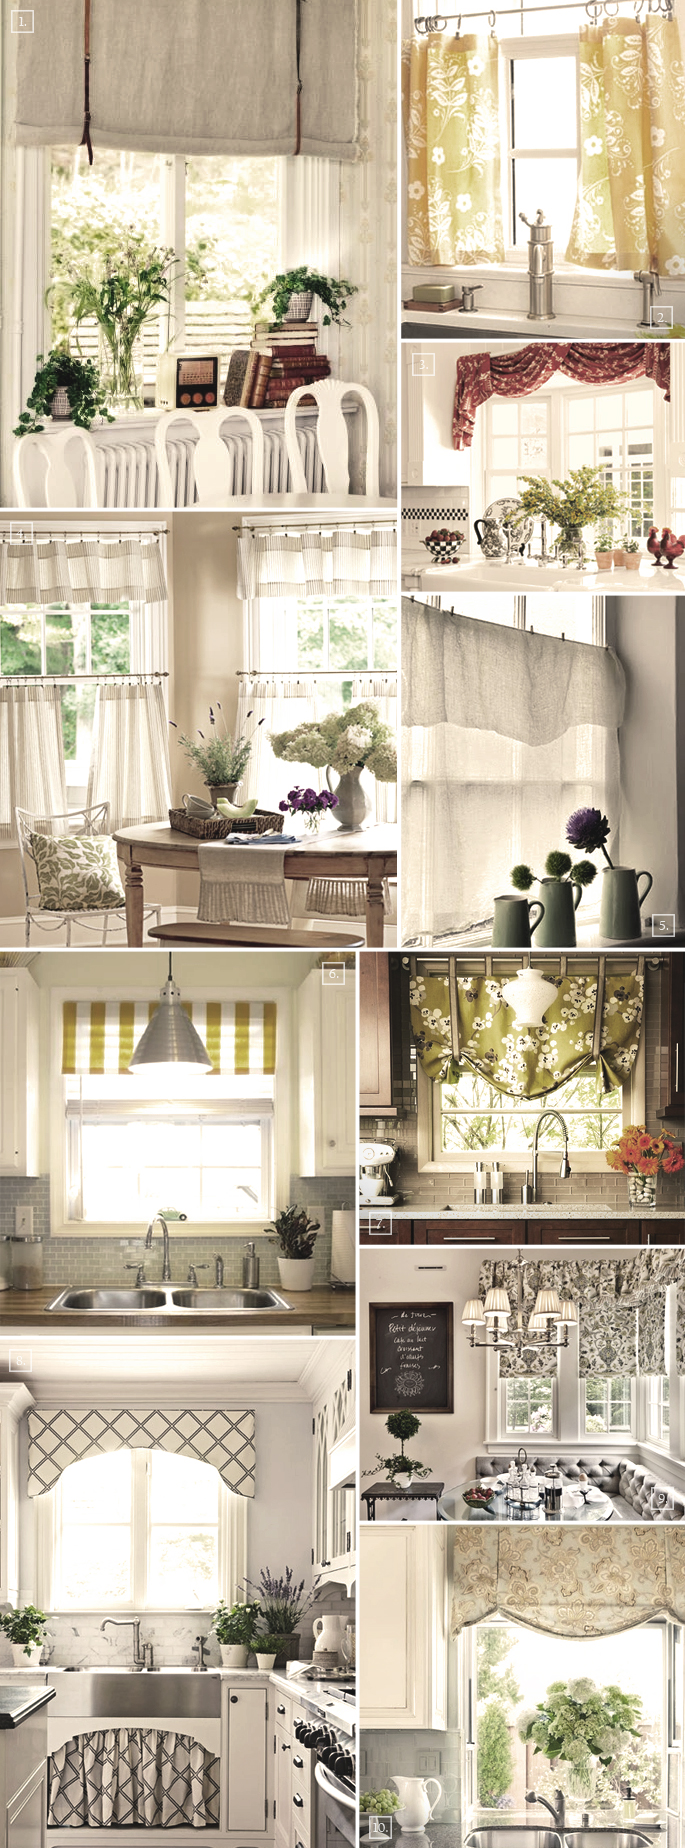 ... The Windows With These Kitchen Curtain Ideas | Home Tree Atlas